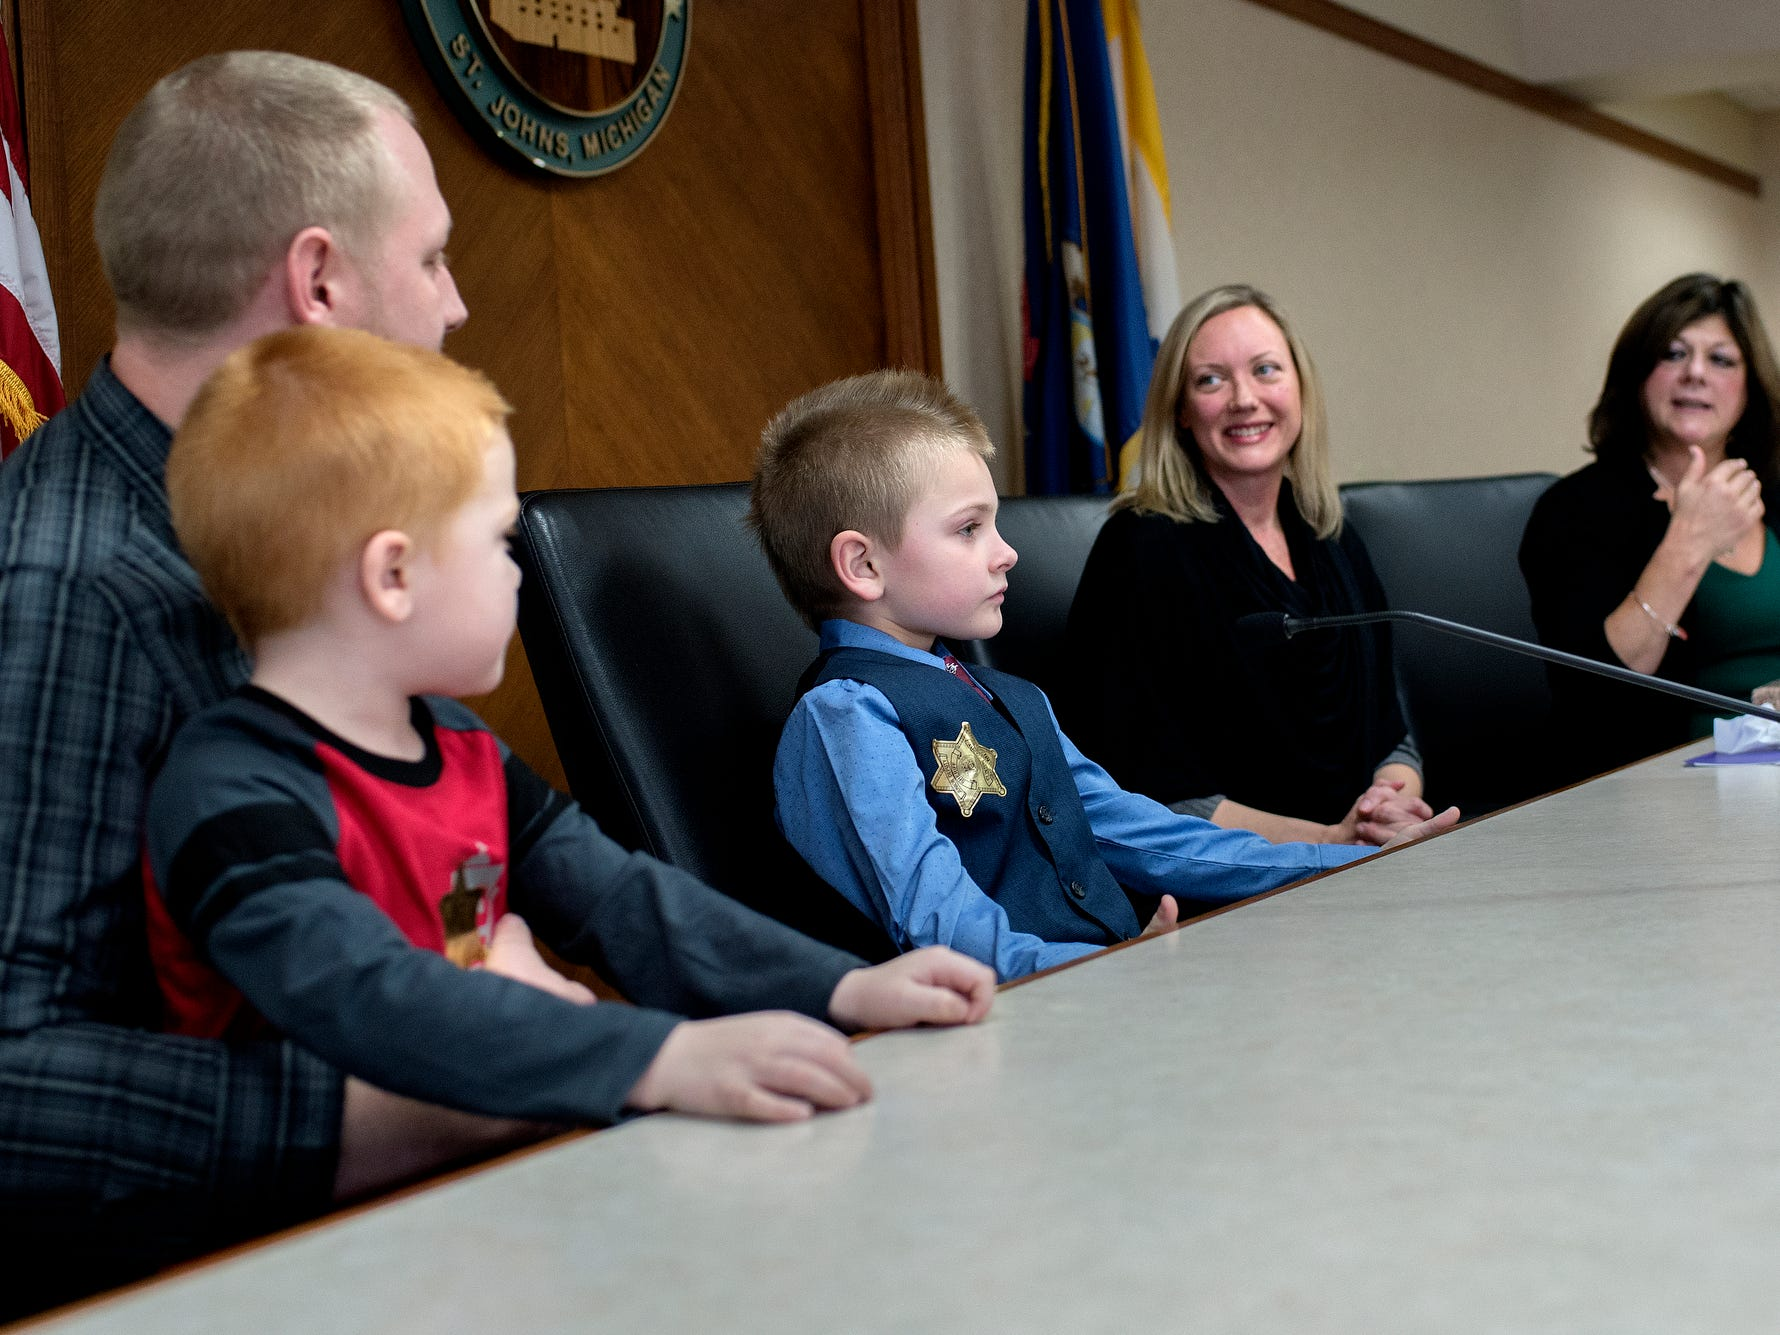 Seven-year-old Grayson Wilder, center, sits at the bench with his family, Michigan Supreme Court Justice Elizabeth T. Clement and Clinton County Chief Probate Judge Lisa Sullivan during Grayson's adoption finalization as part of a Michigan Adoption Day ceremony at the Clinton County Courthouse in St. Johns. Four families finalized the adoptions of six children.